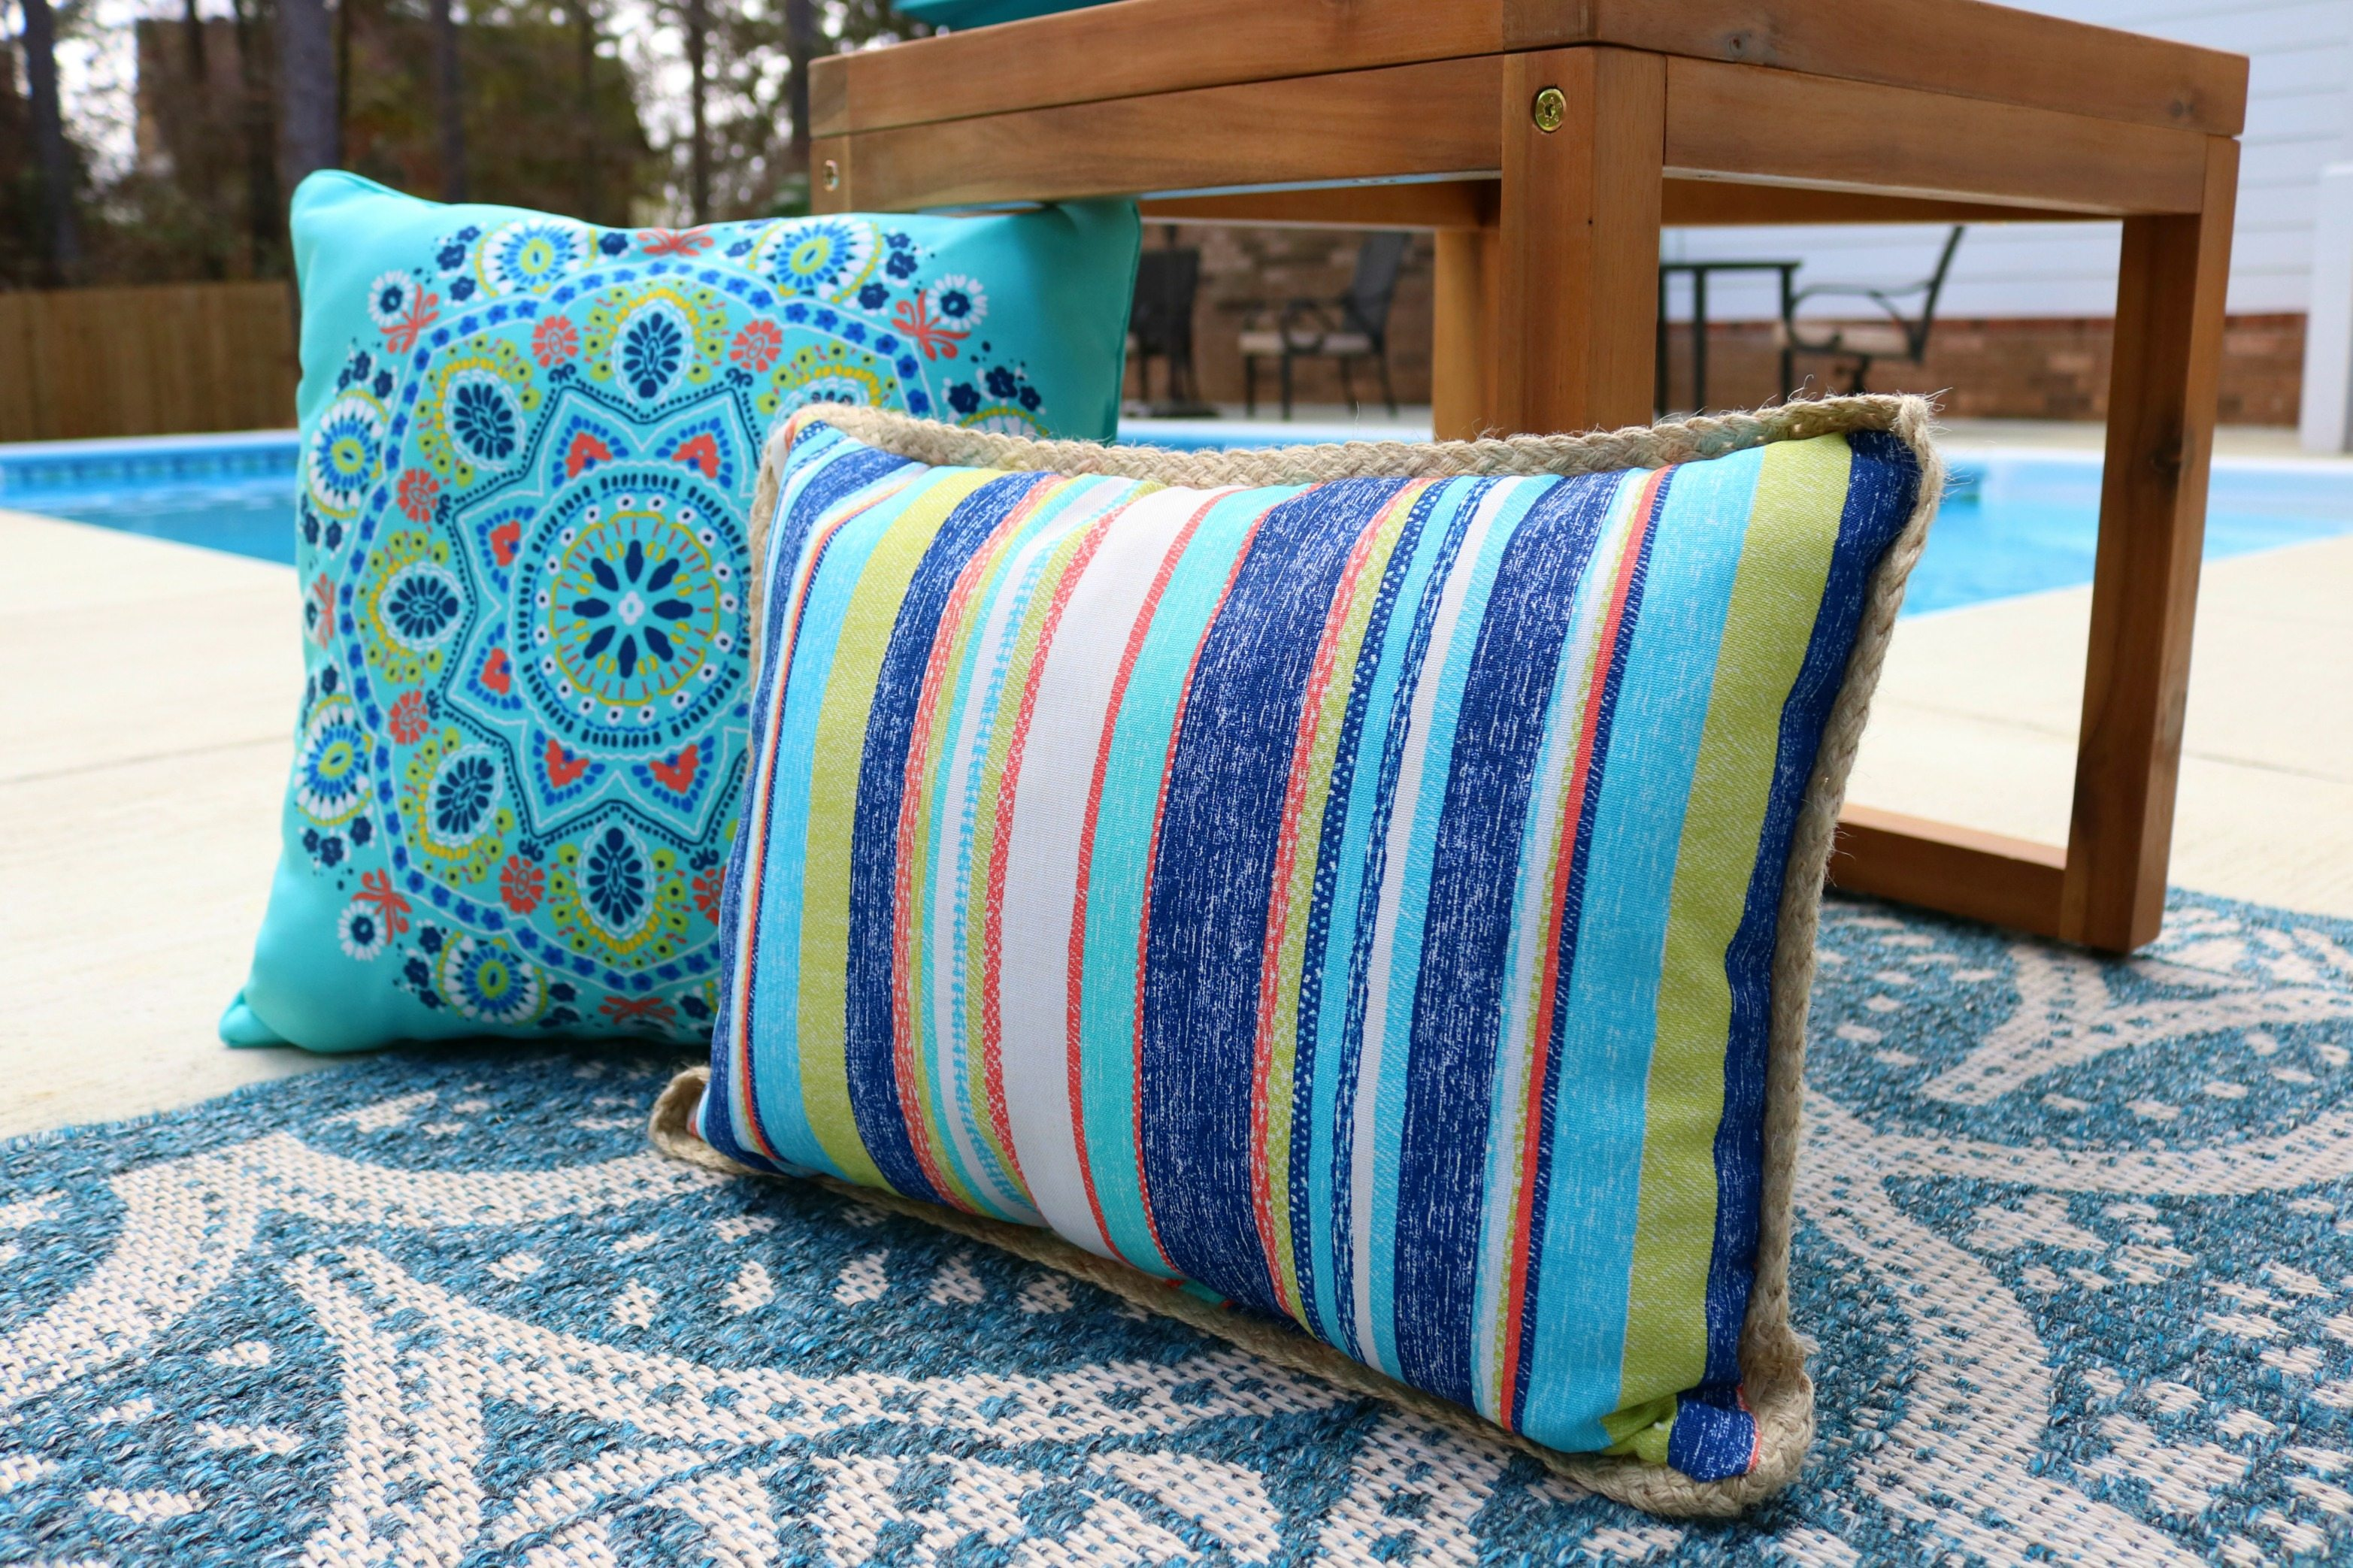 Mix and match pillows